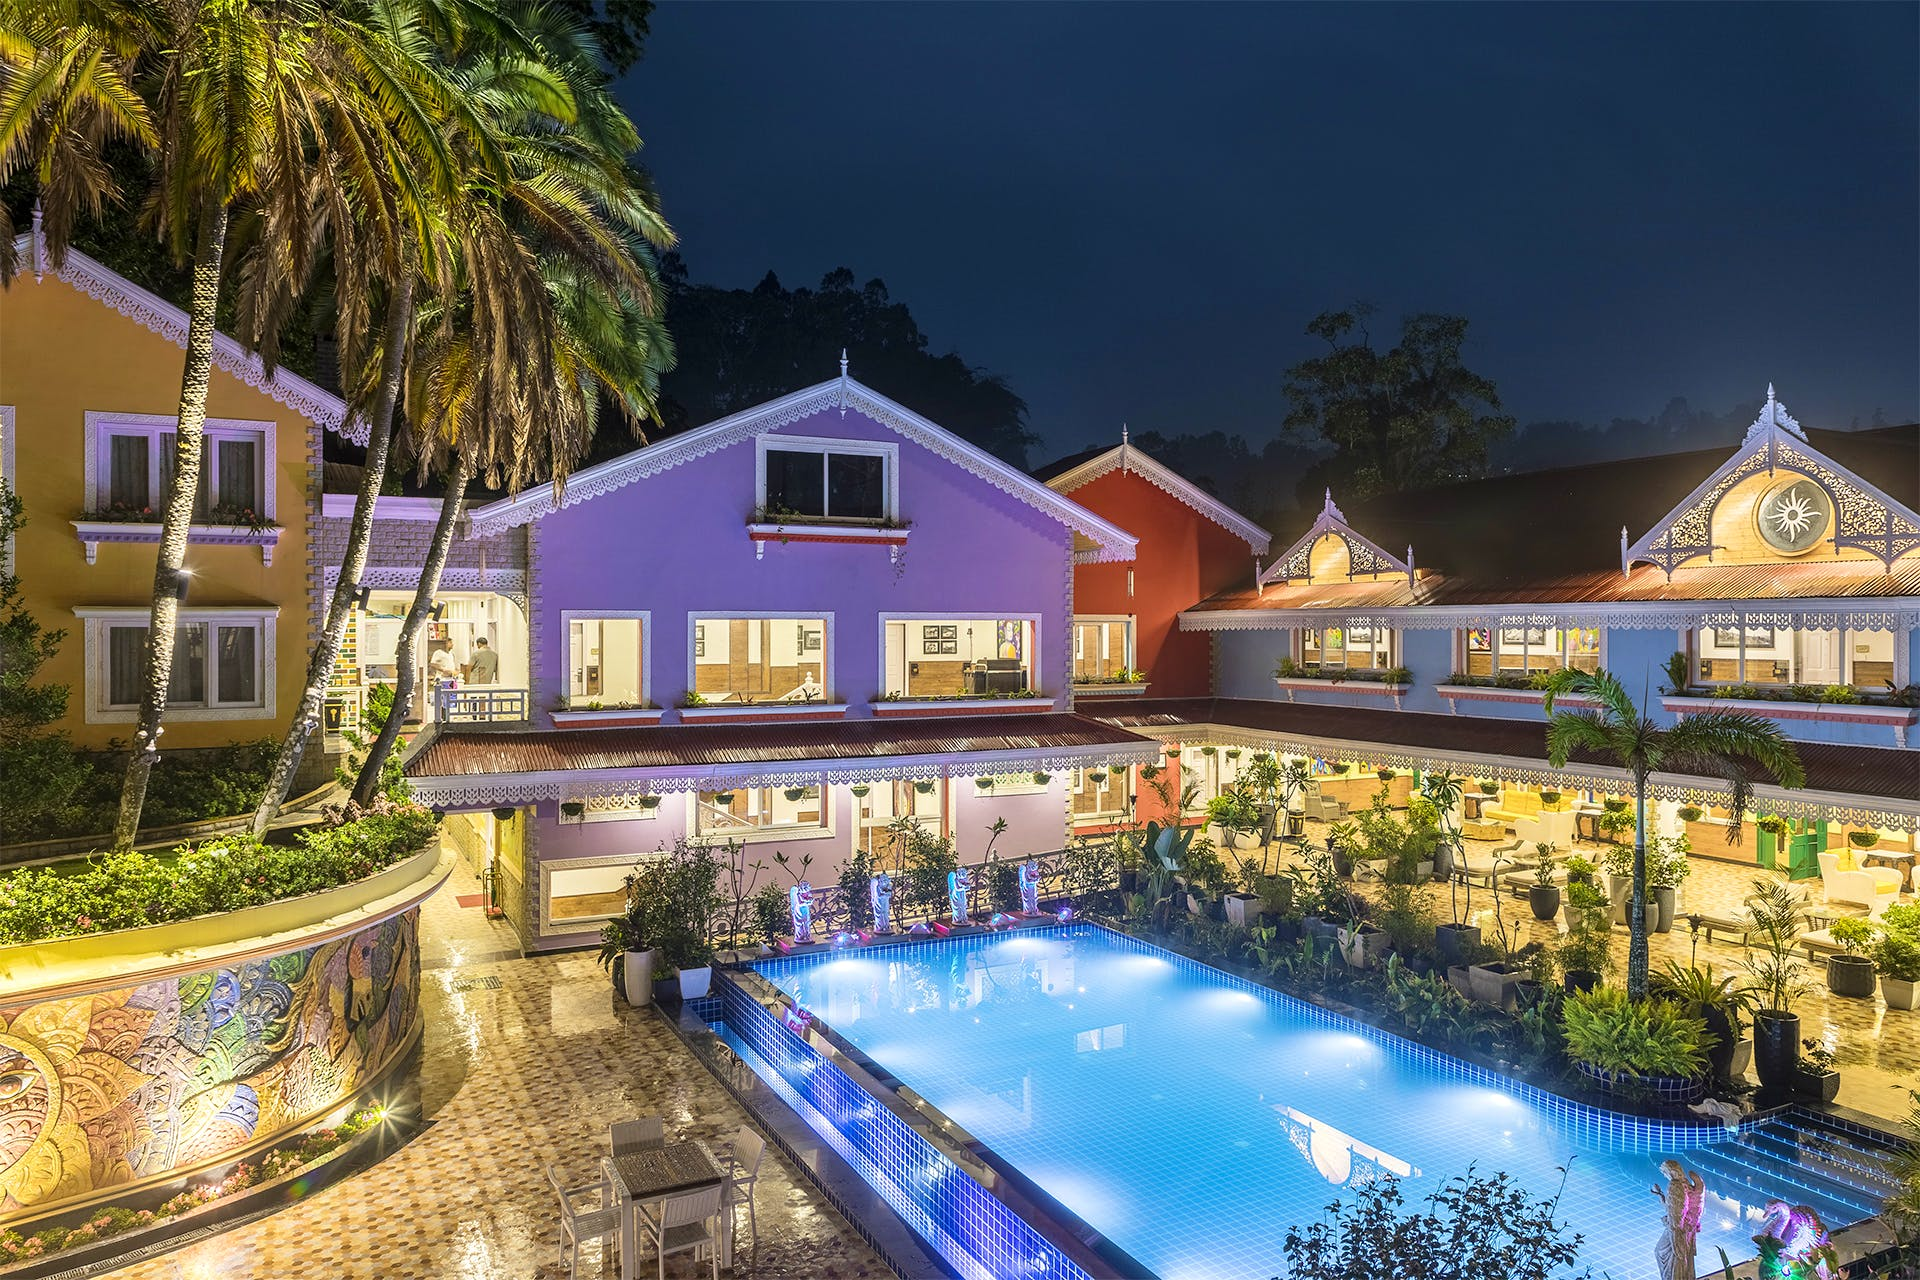 Swimming pool,Home,Property,Building,Resort,House,Real estate,Estate,Lighting,Town